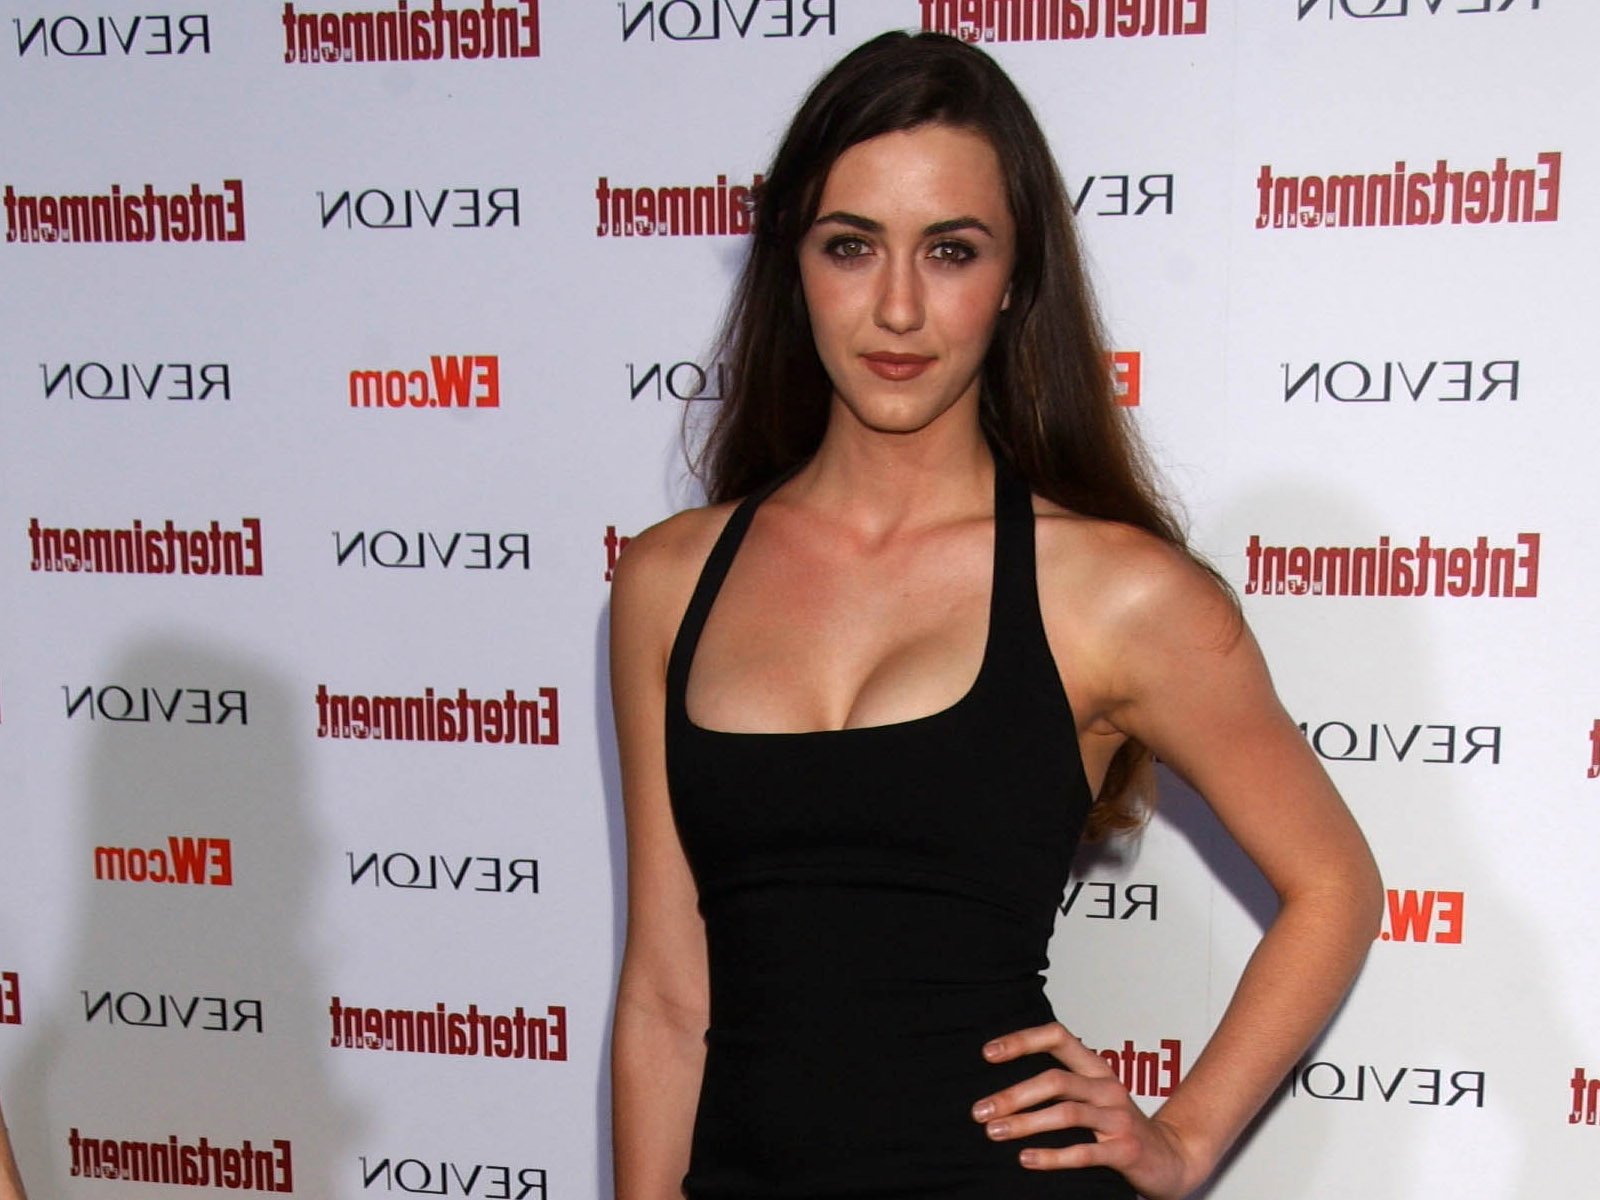 Images Madeline Zima nude (27 foto and video), Topless, Hot, Boobs, braless 2019